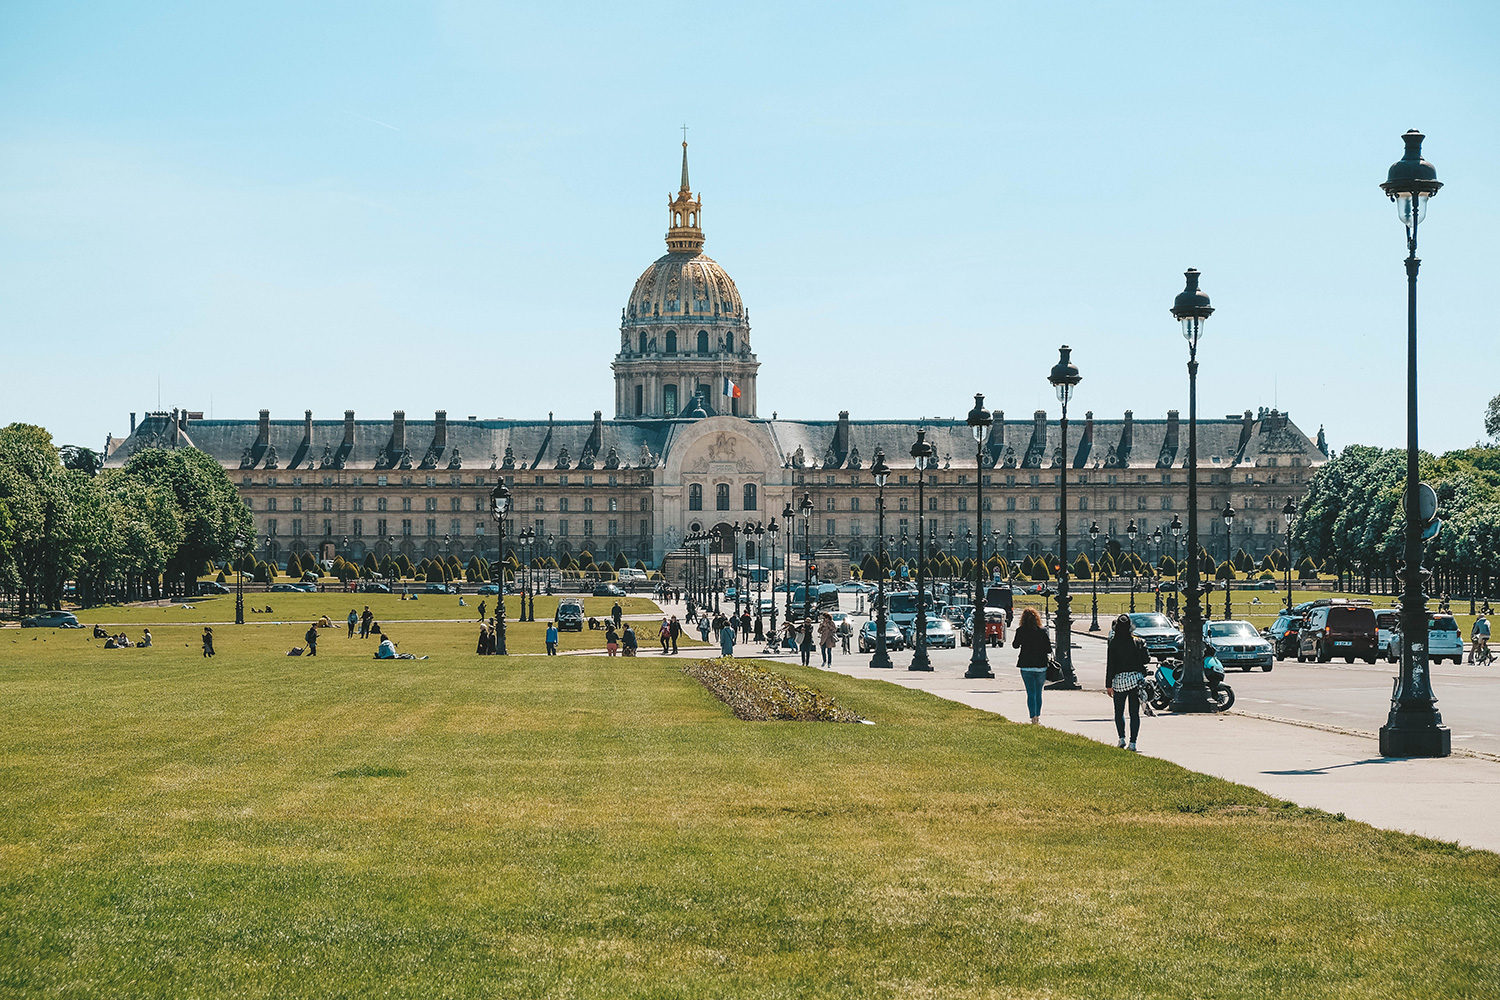 L'hôtel national des Invalides